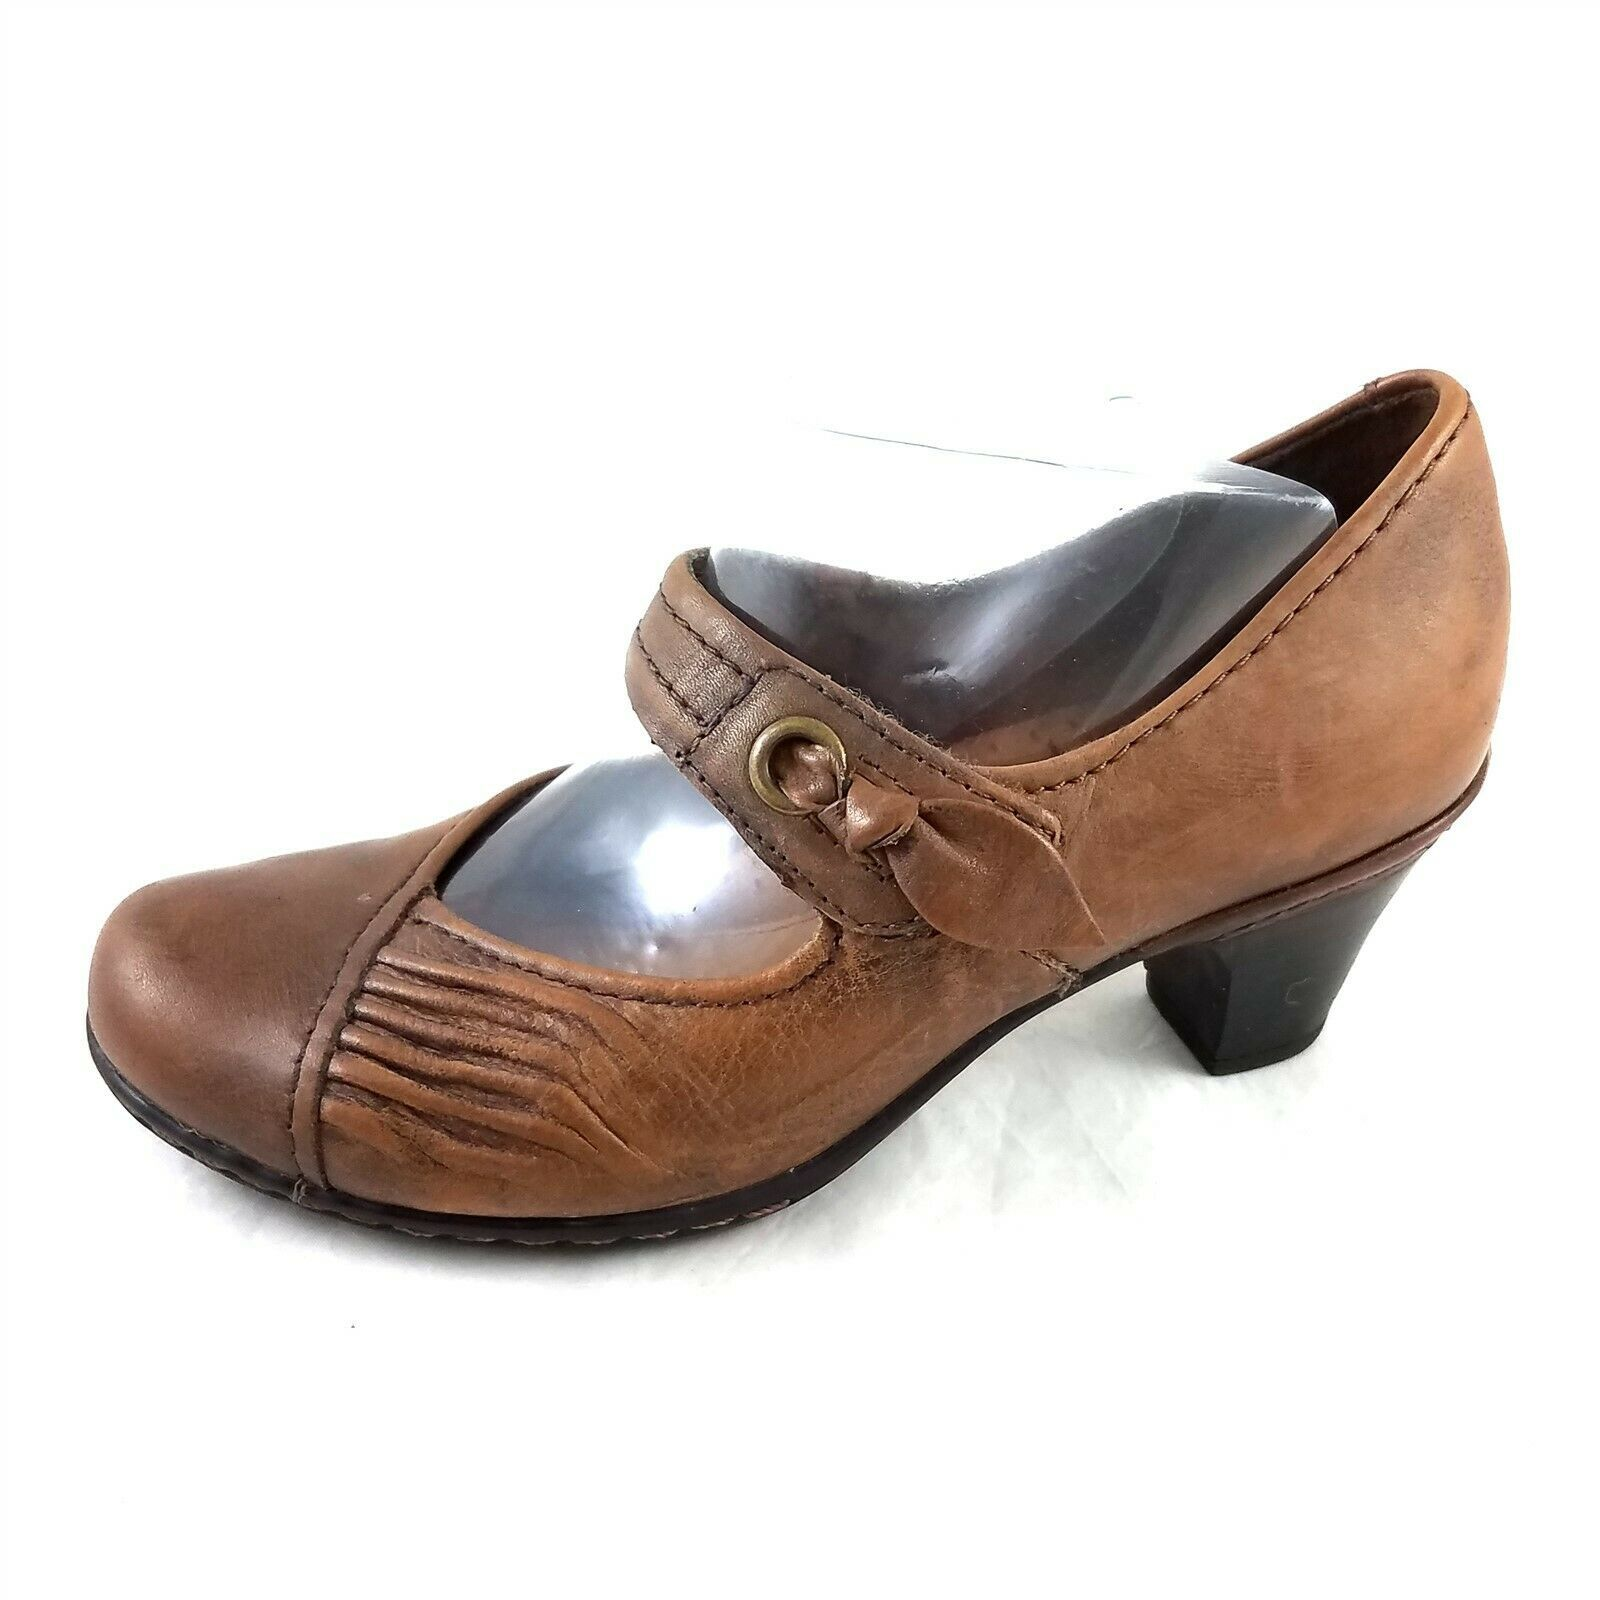 Primary image for Cobb Hill by New Balance Brown Leather Mary Janes Pumps Heels Womens 6 M